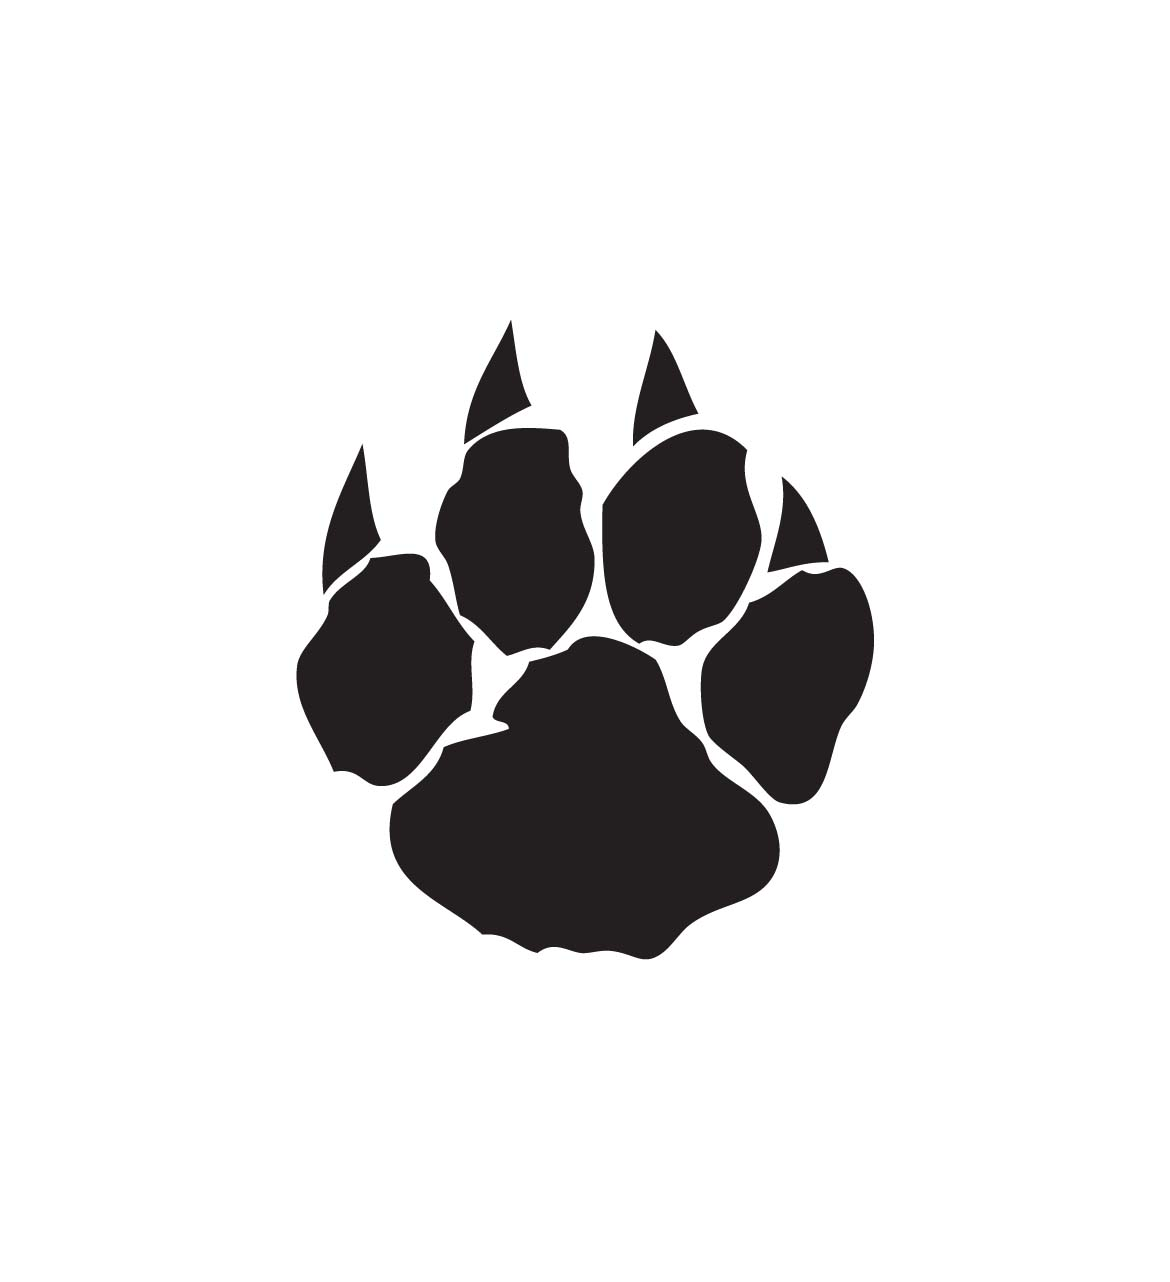 Pics Photos Wildcat Paw Prints Cat Paws clipart free image.